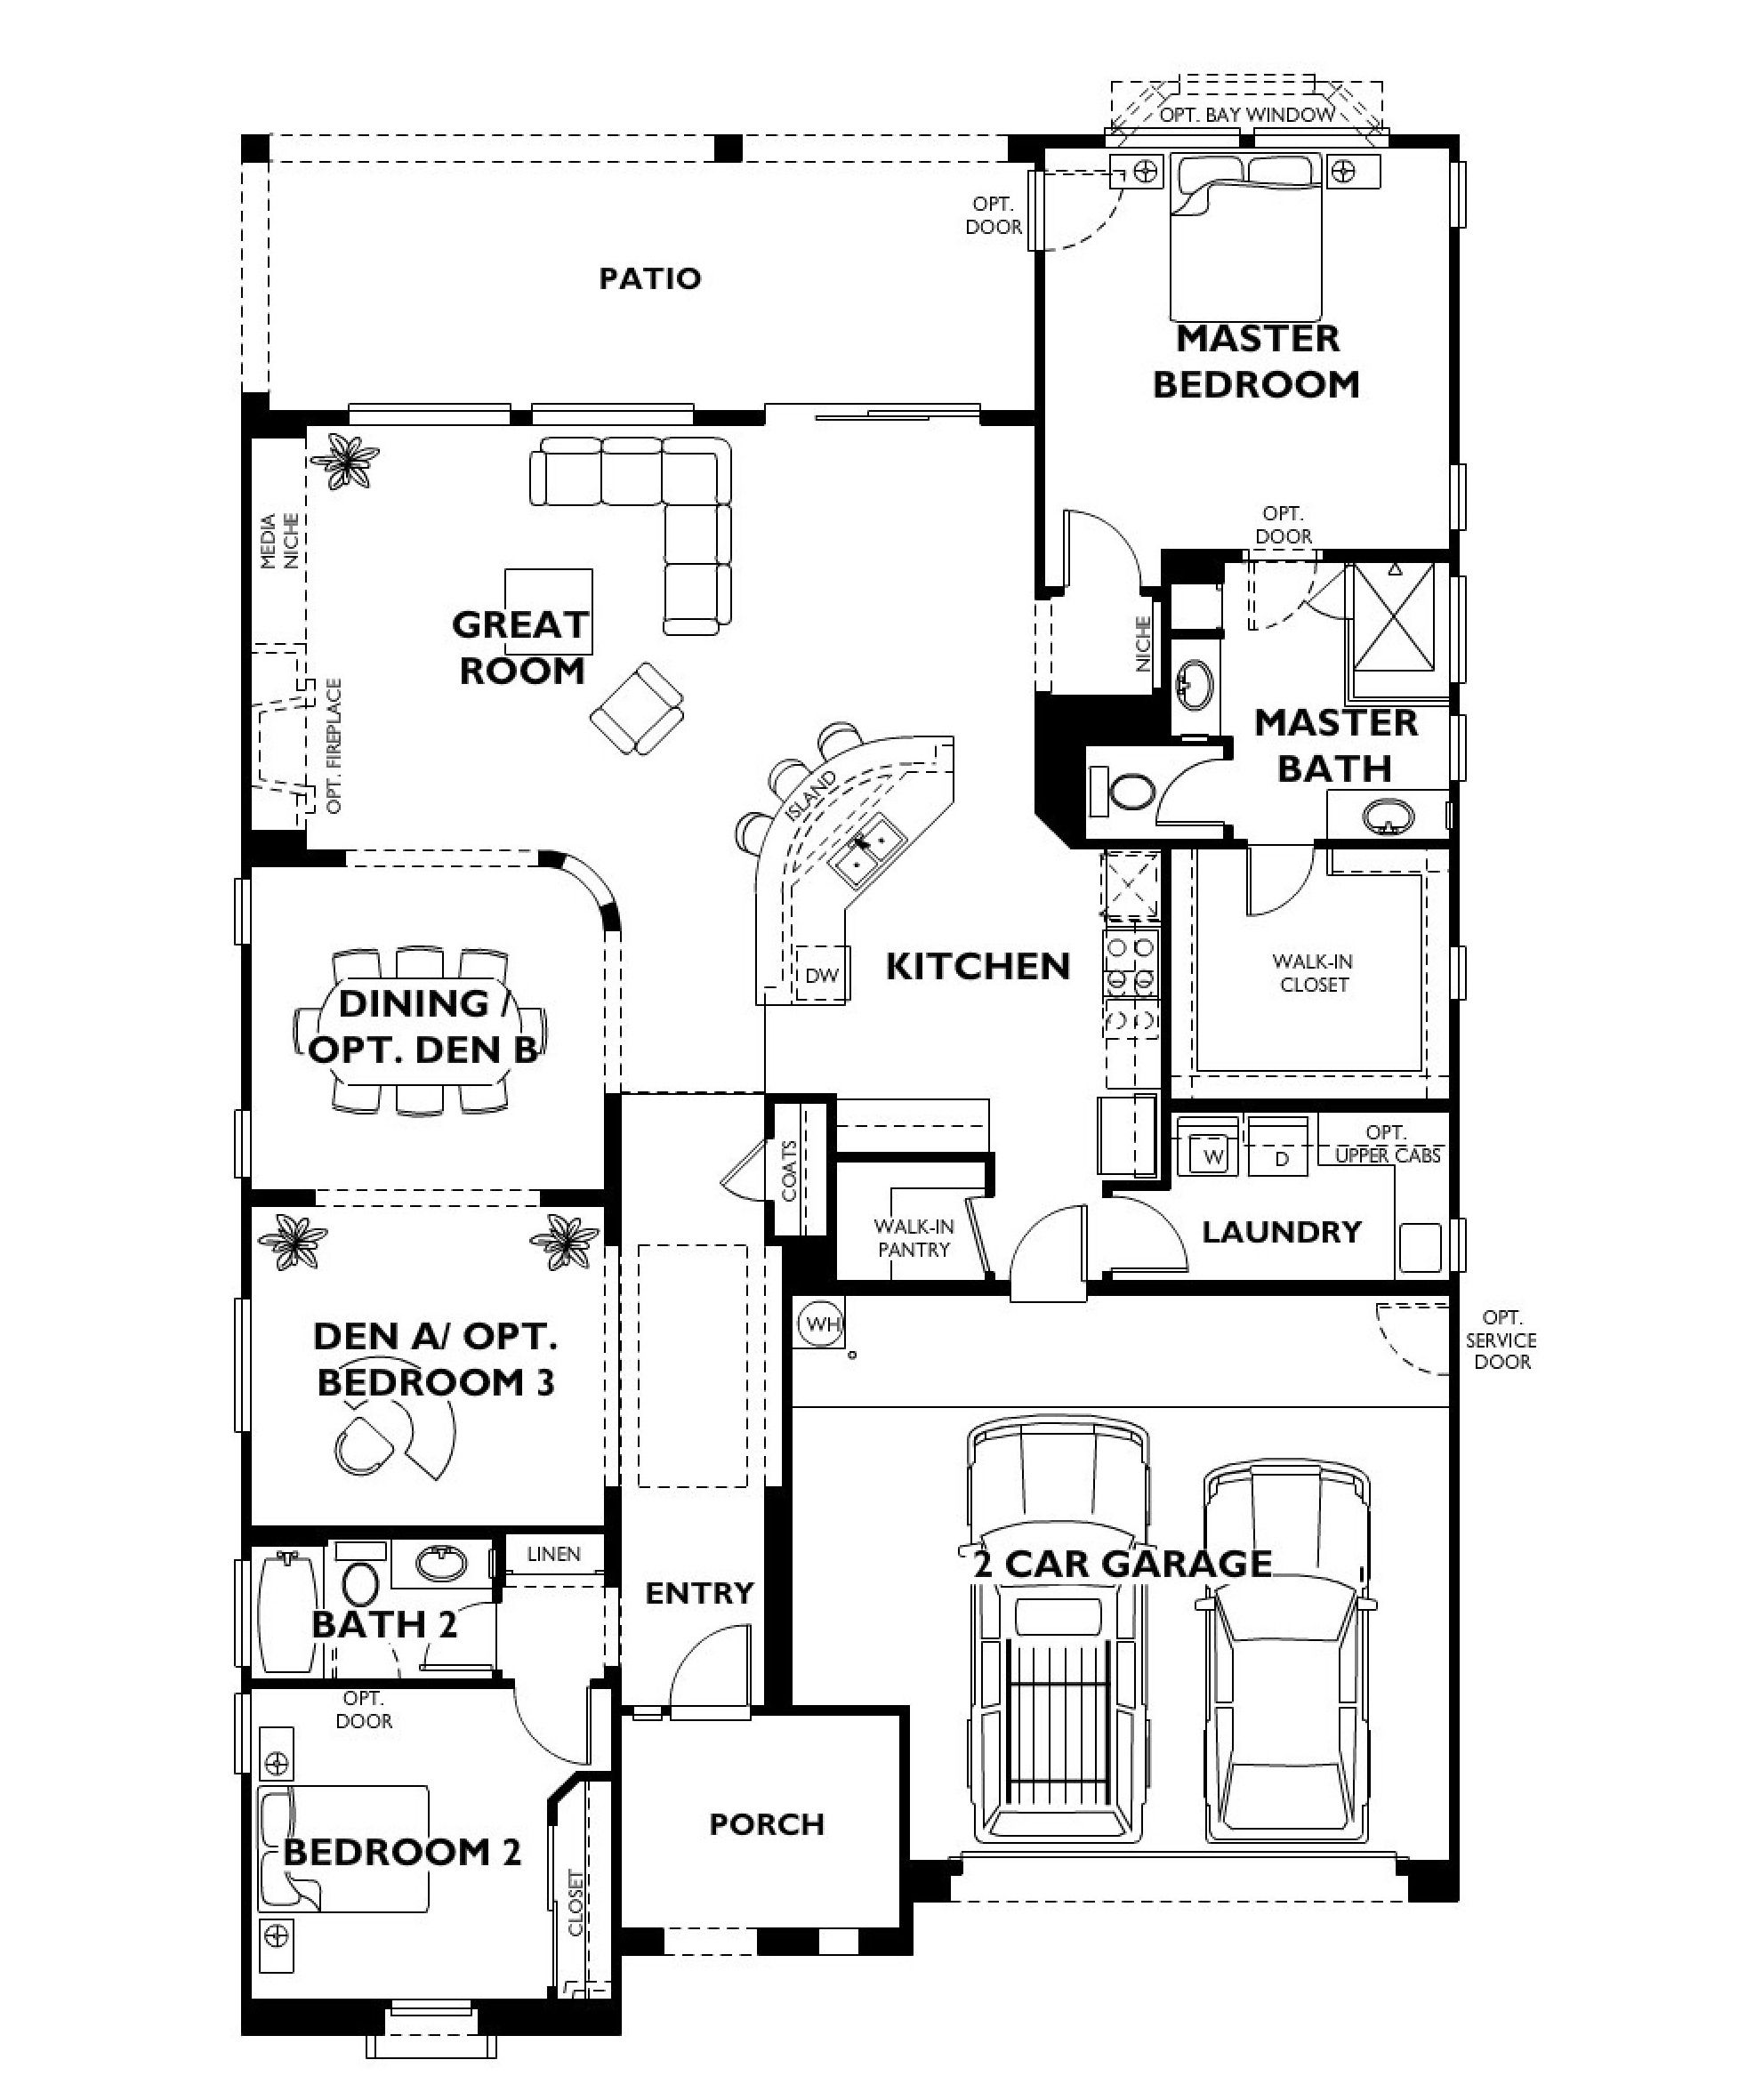 House Models And Plans | Fame Tropical House Designs And Floor Plans With Modern Style